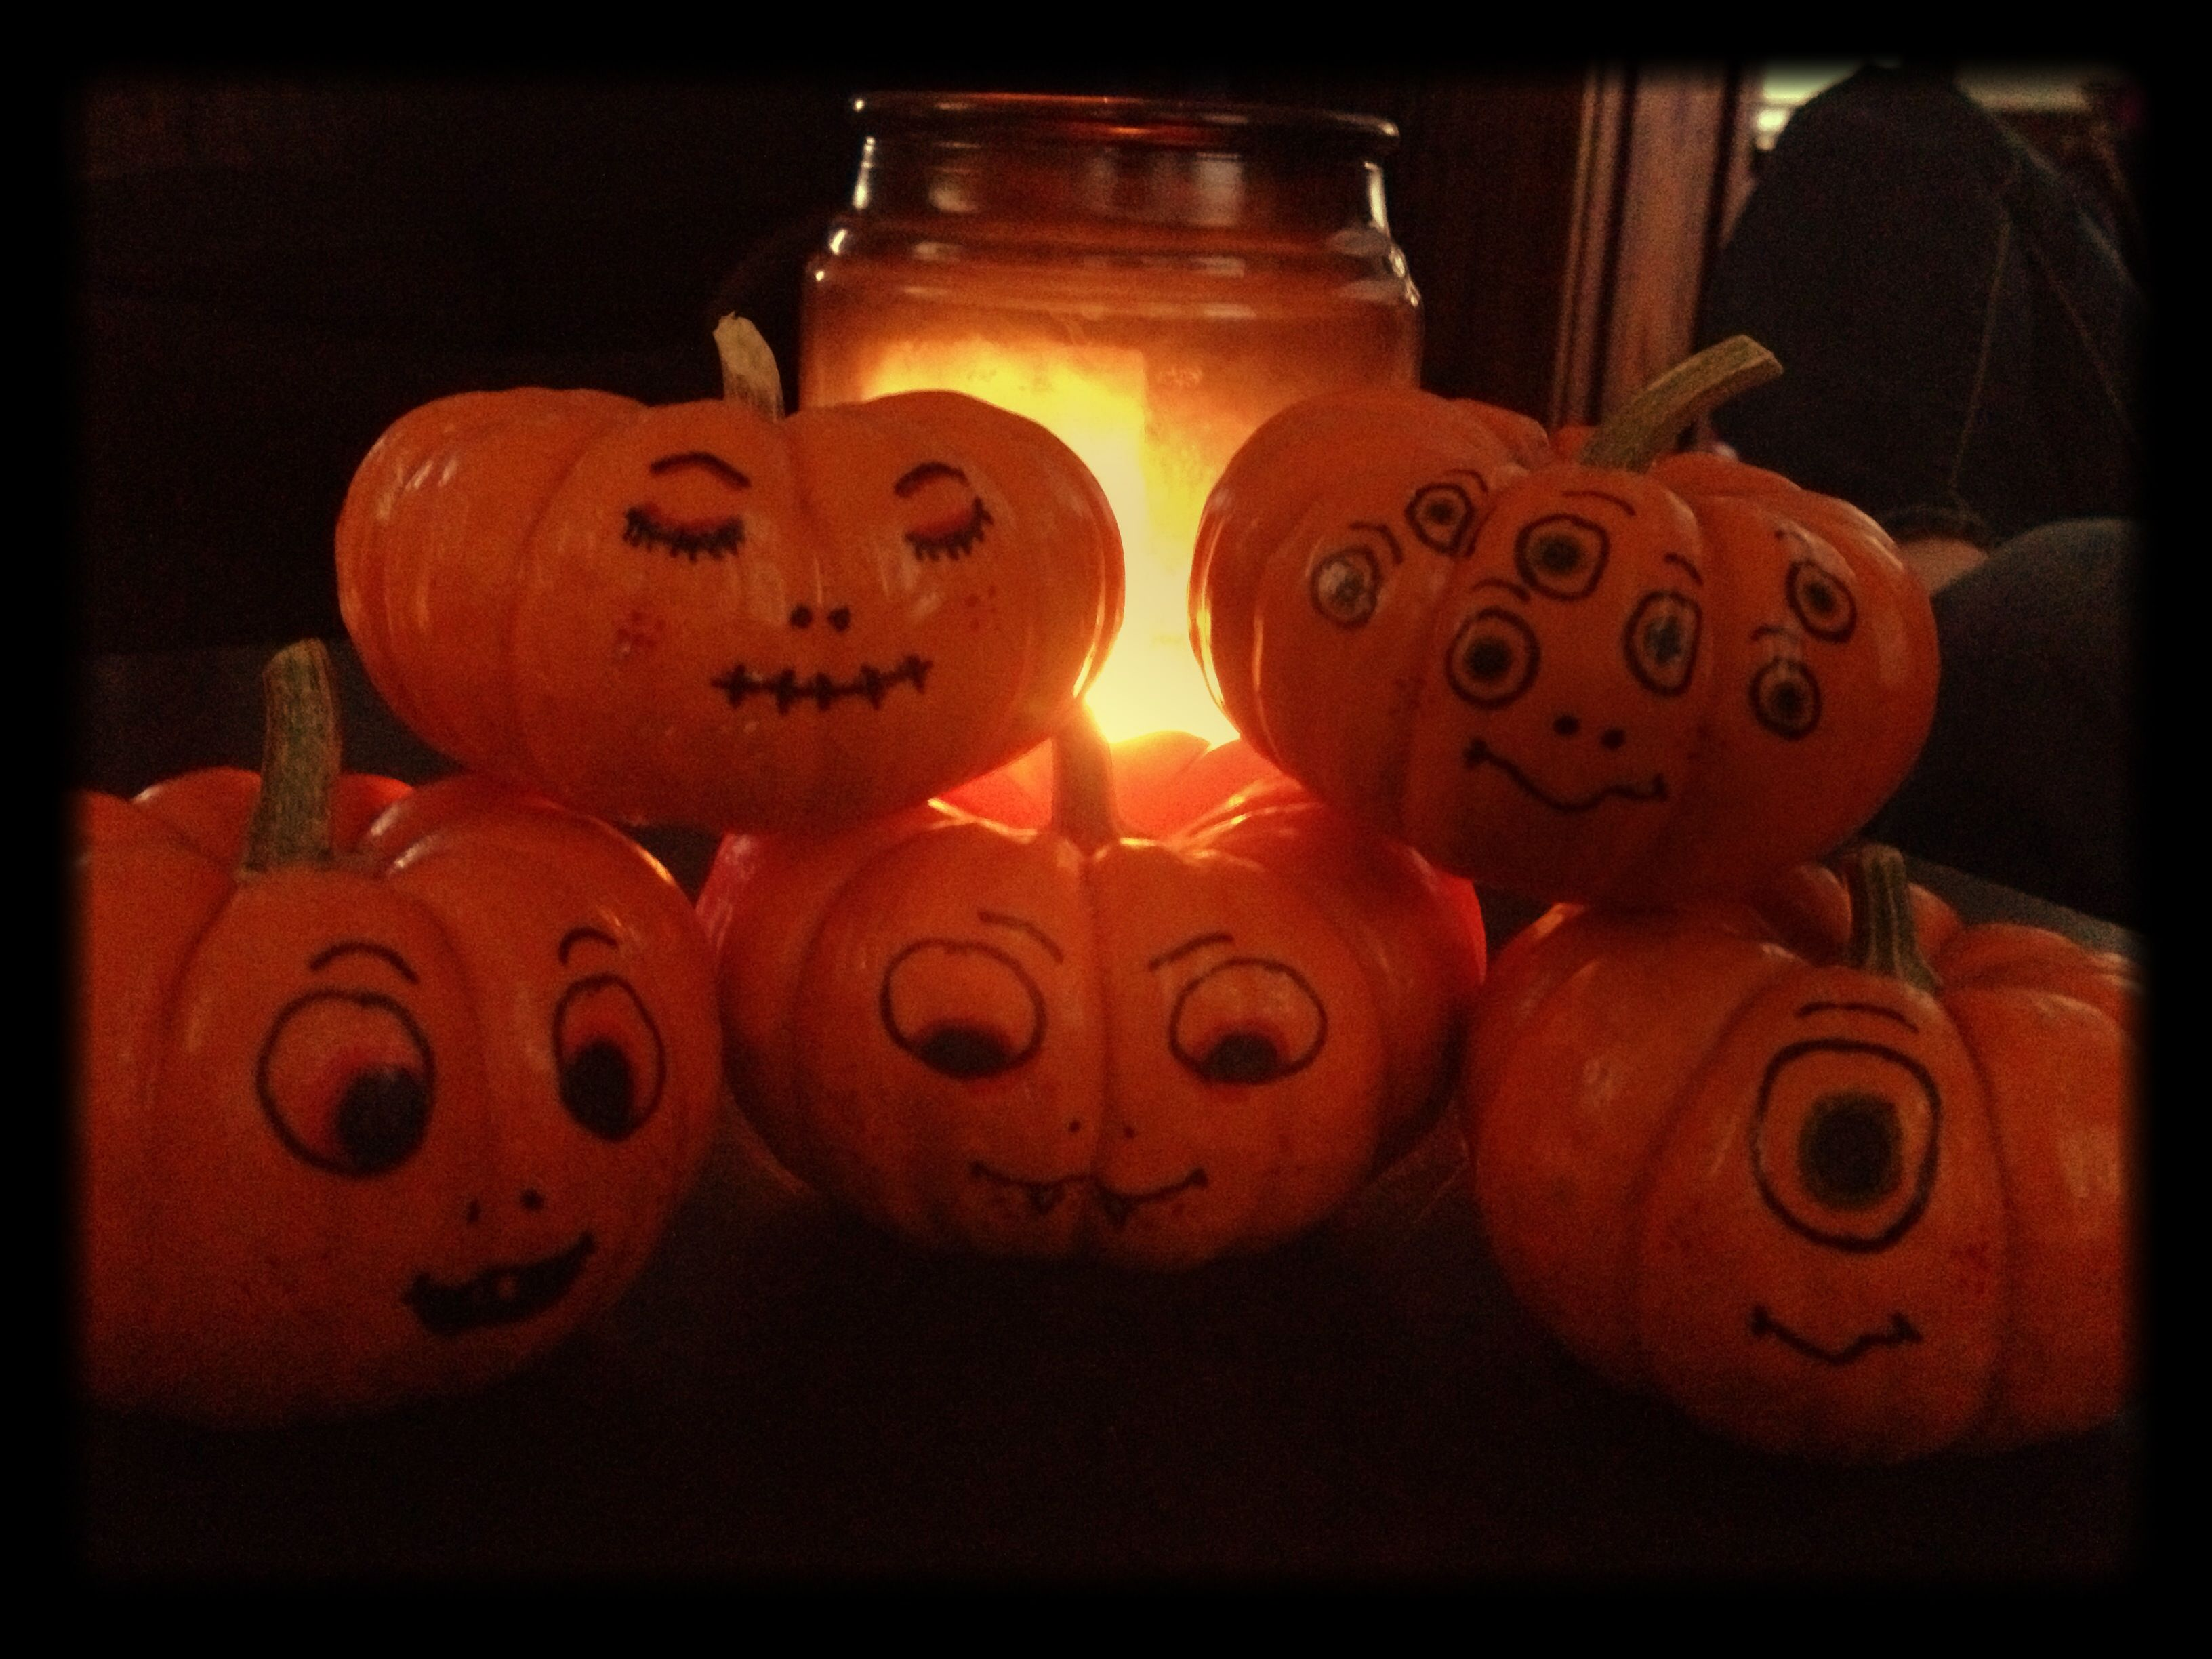 Decorating Mini Pumpkins Use Sharpies To Draw Cute Or Creepy Faces Halloween Pumpkins Carvings Pumpkin Drawing No Carve Pumpkin Decorating